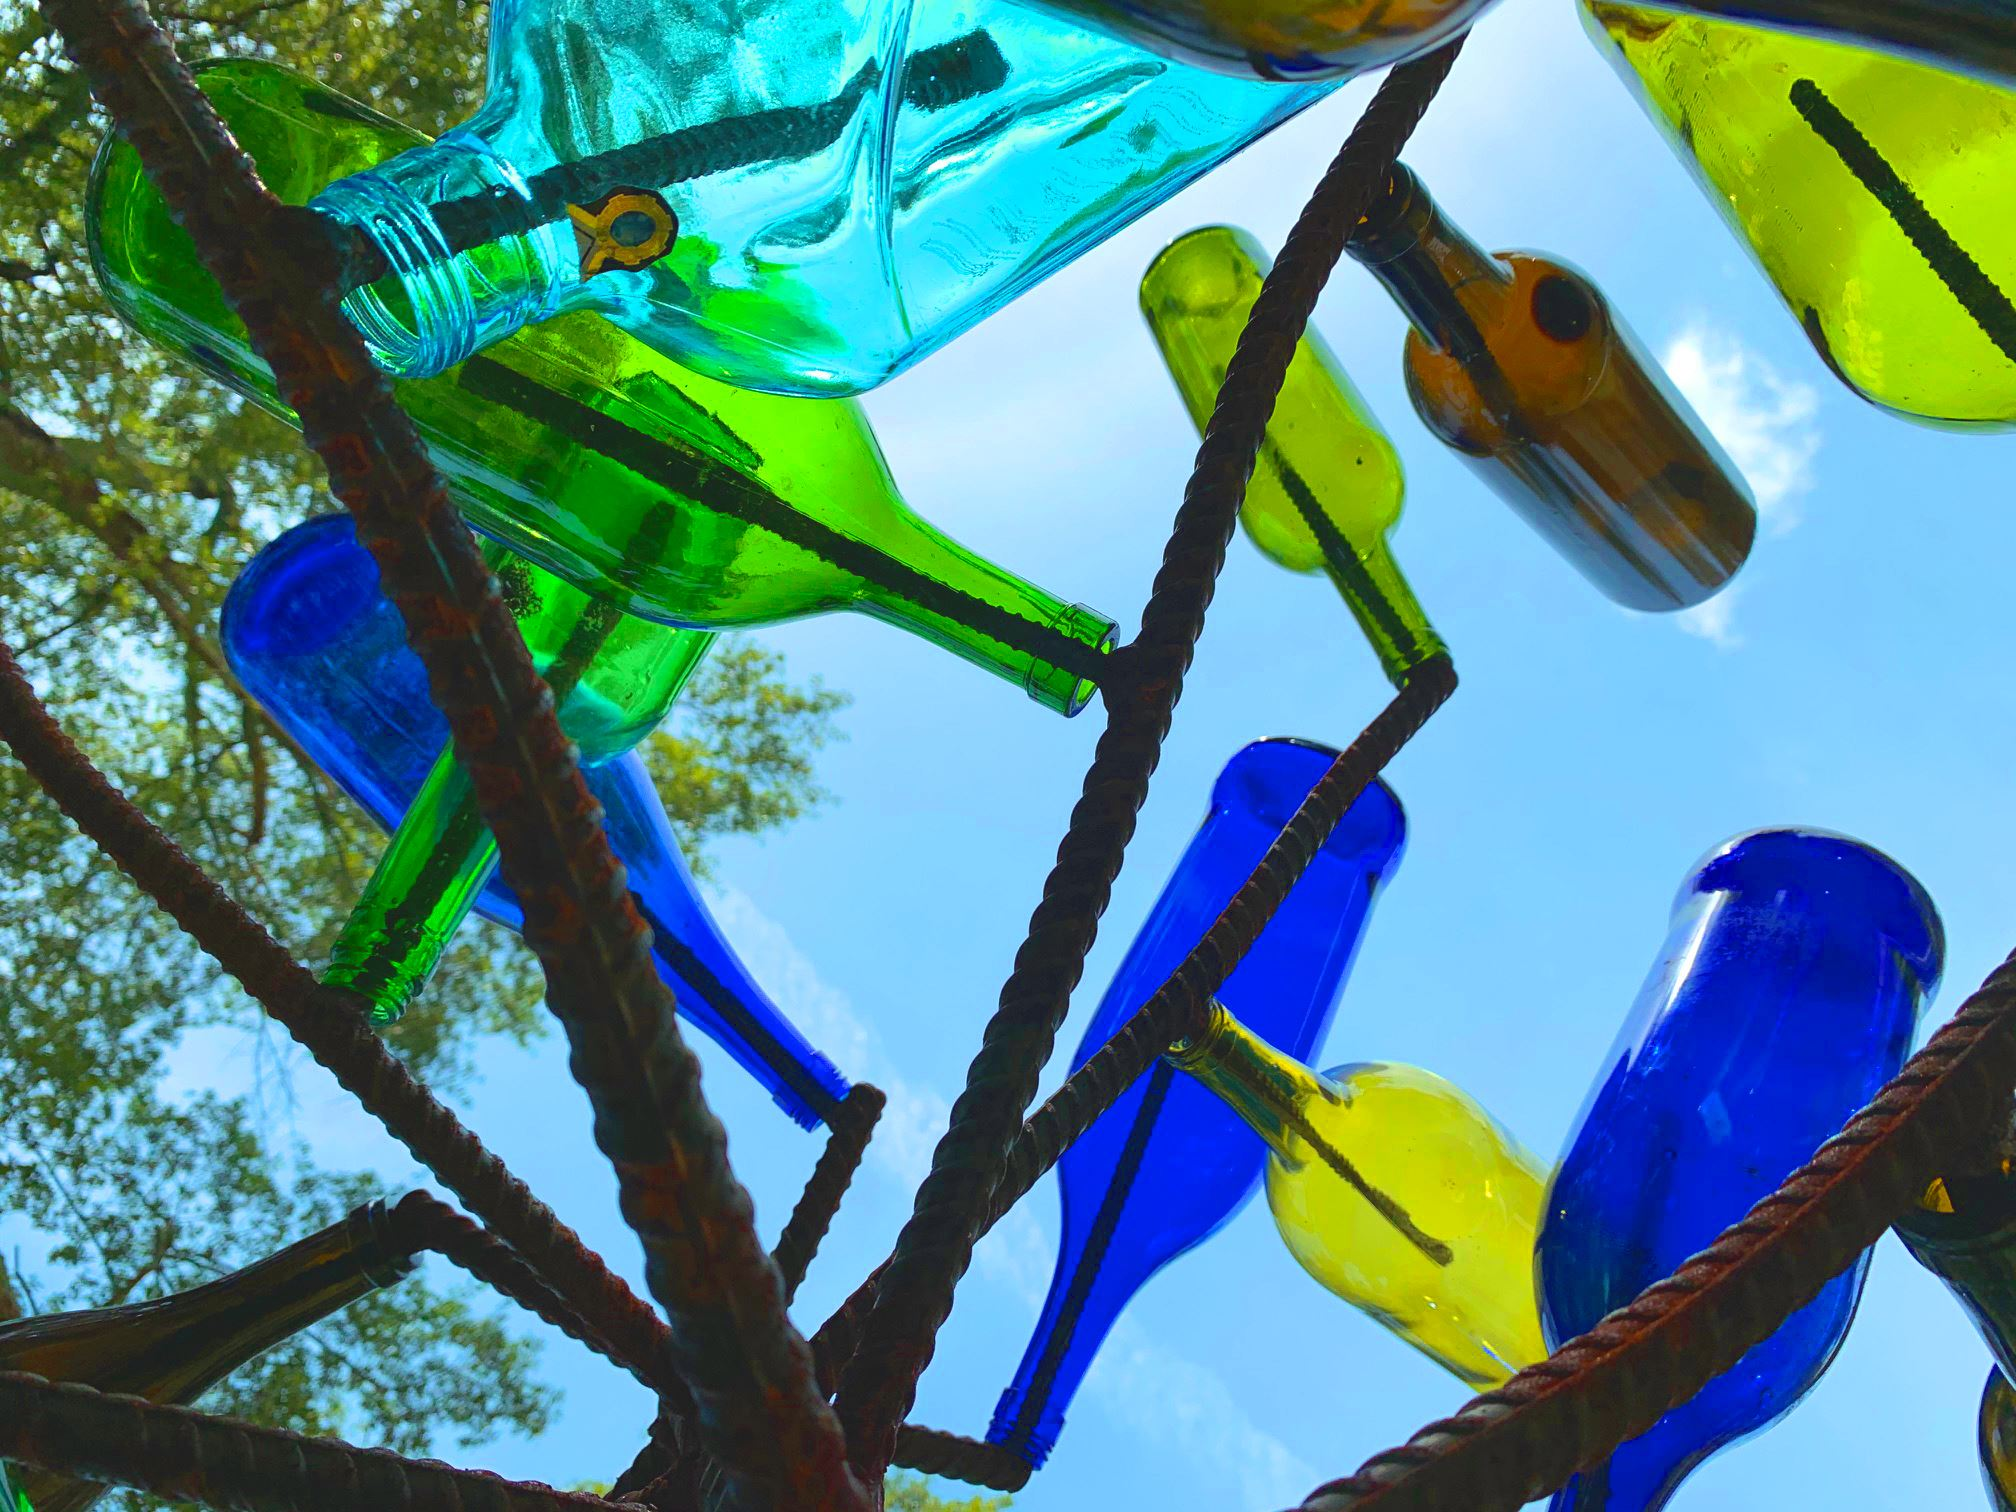 The bottle trees sit along the trail in the Chicopee area.